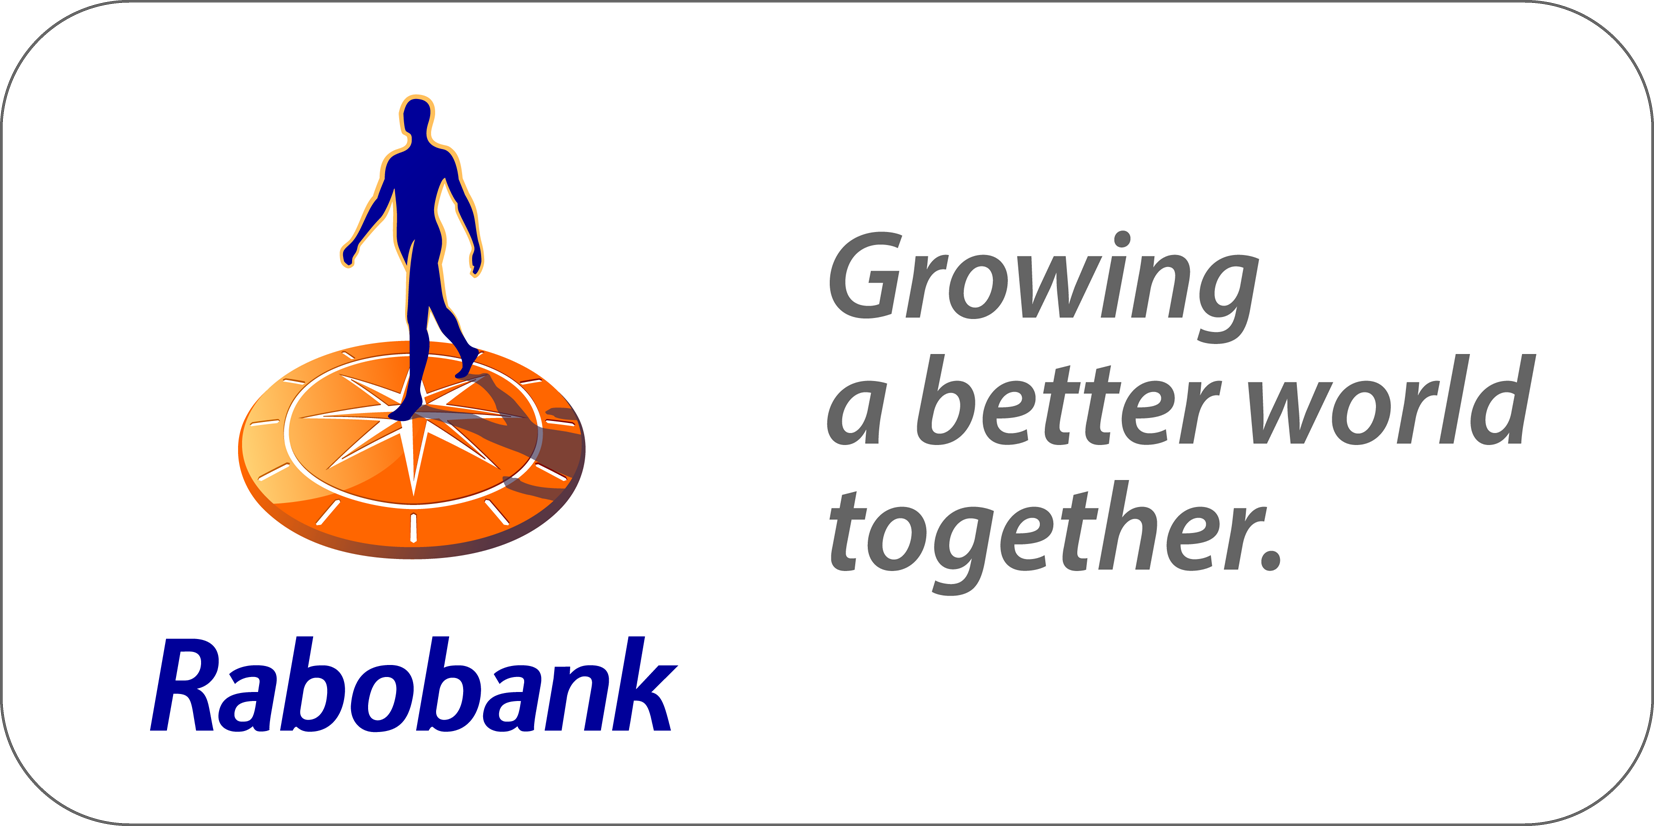 Rabobank Growing a better world together.